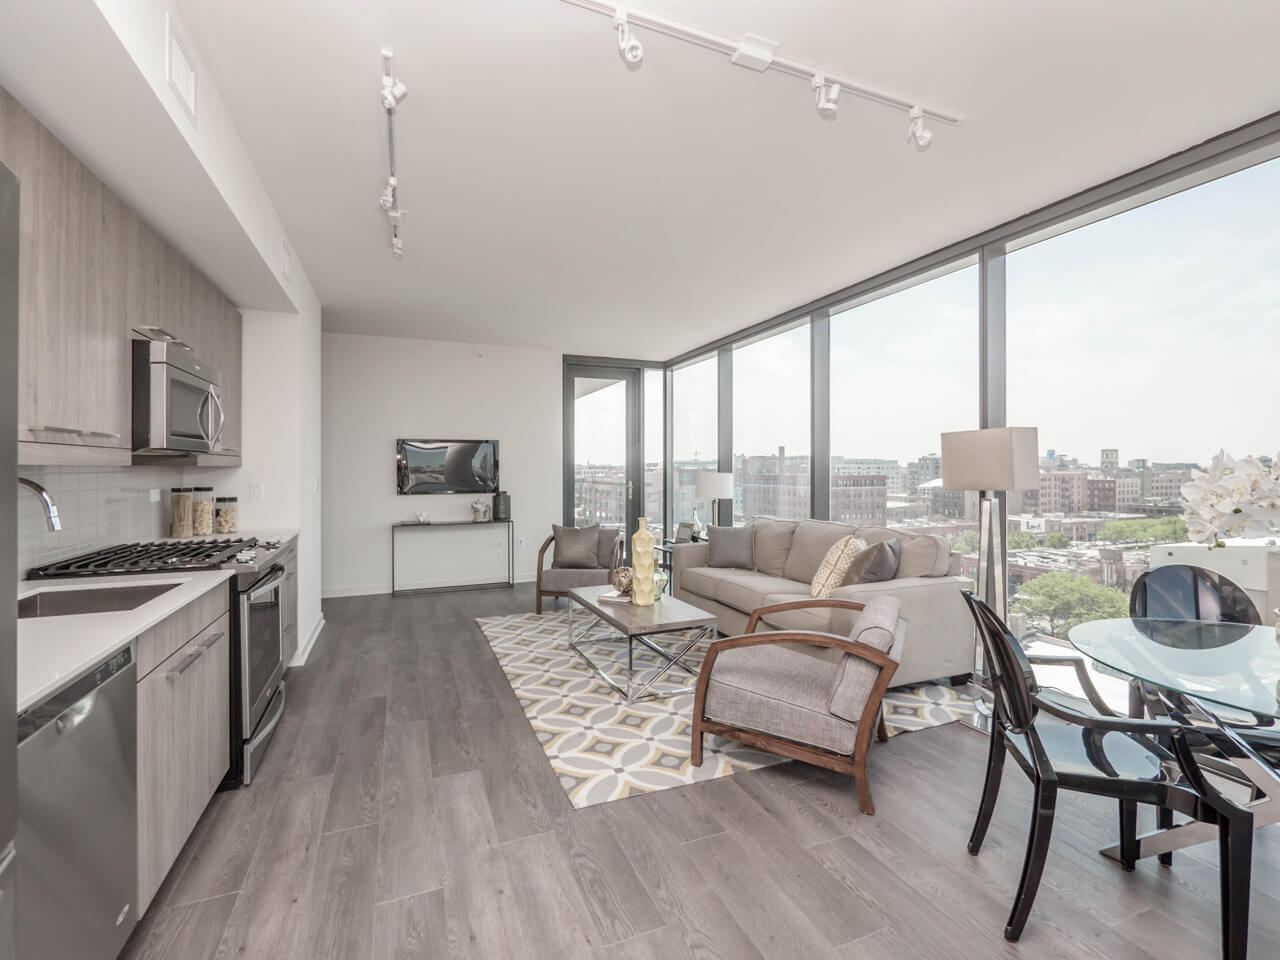 Best apartment search site in Chicago - The Parker Fulton Market